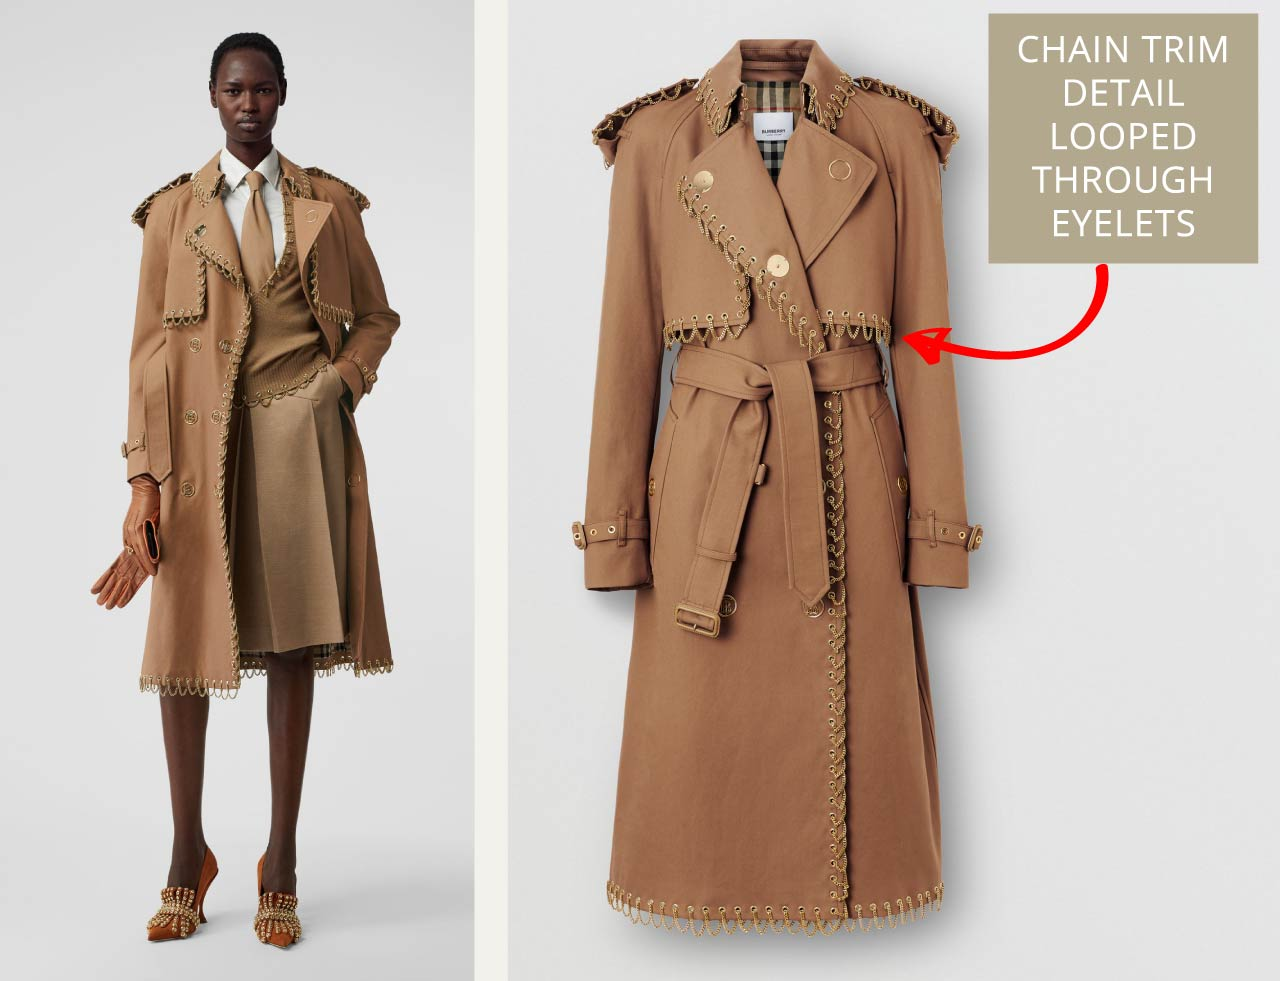 Chain detail trim on Burberry trench coat. The Cutting Class.